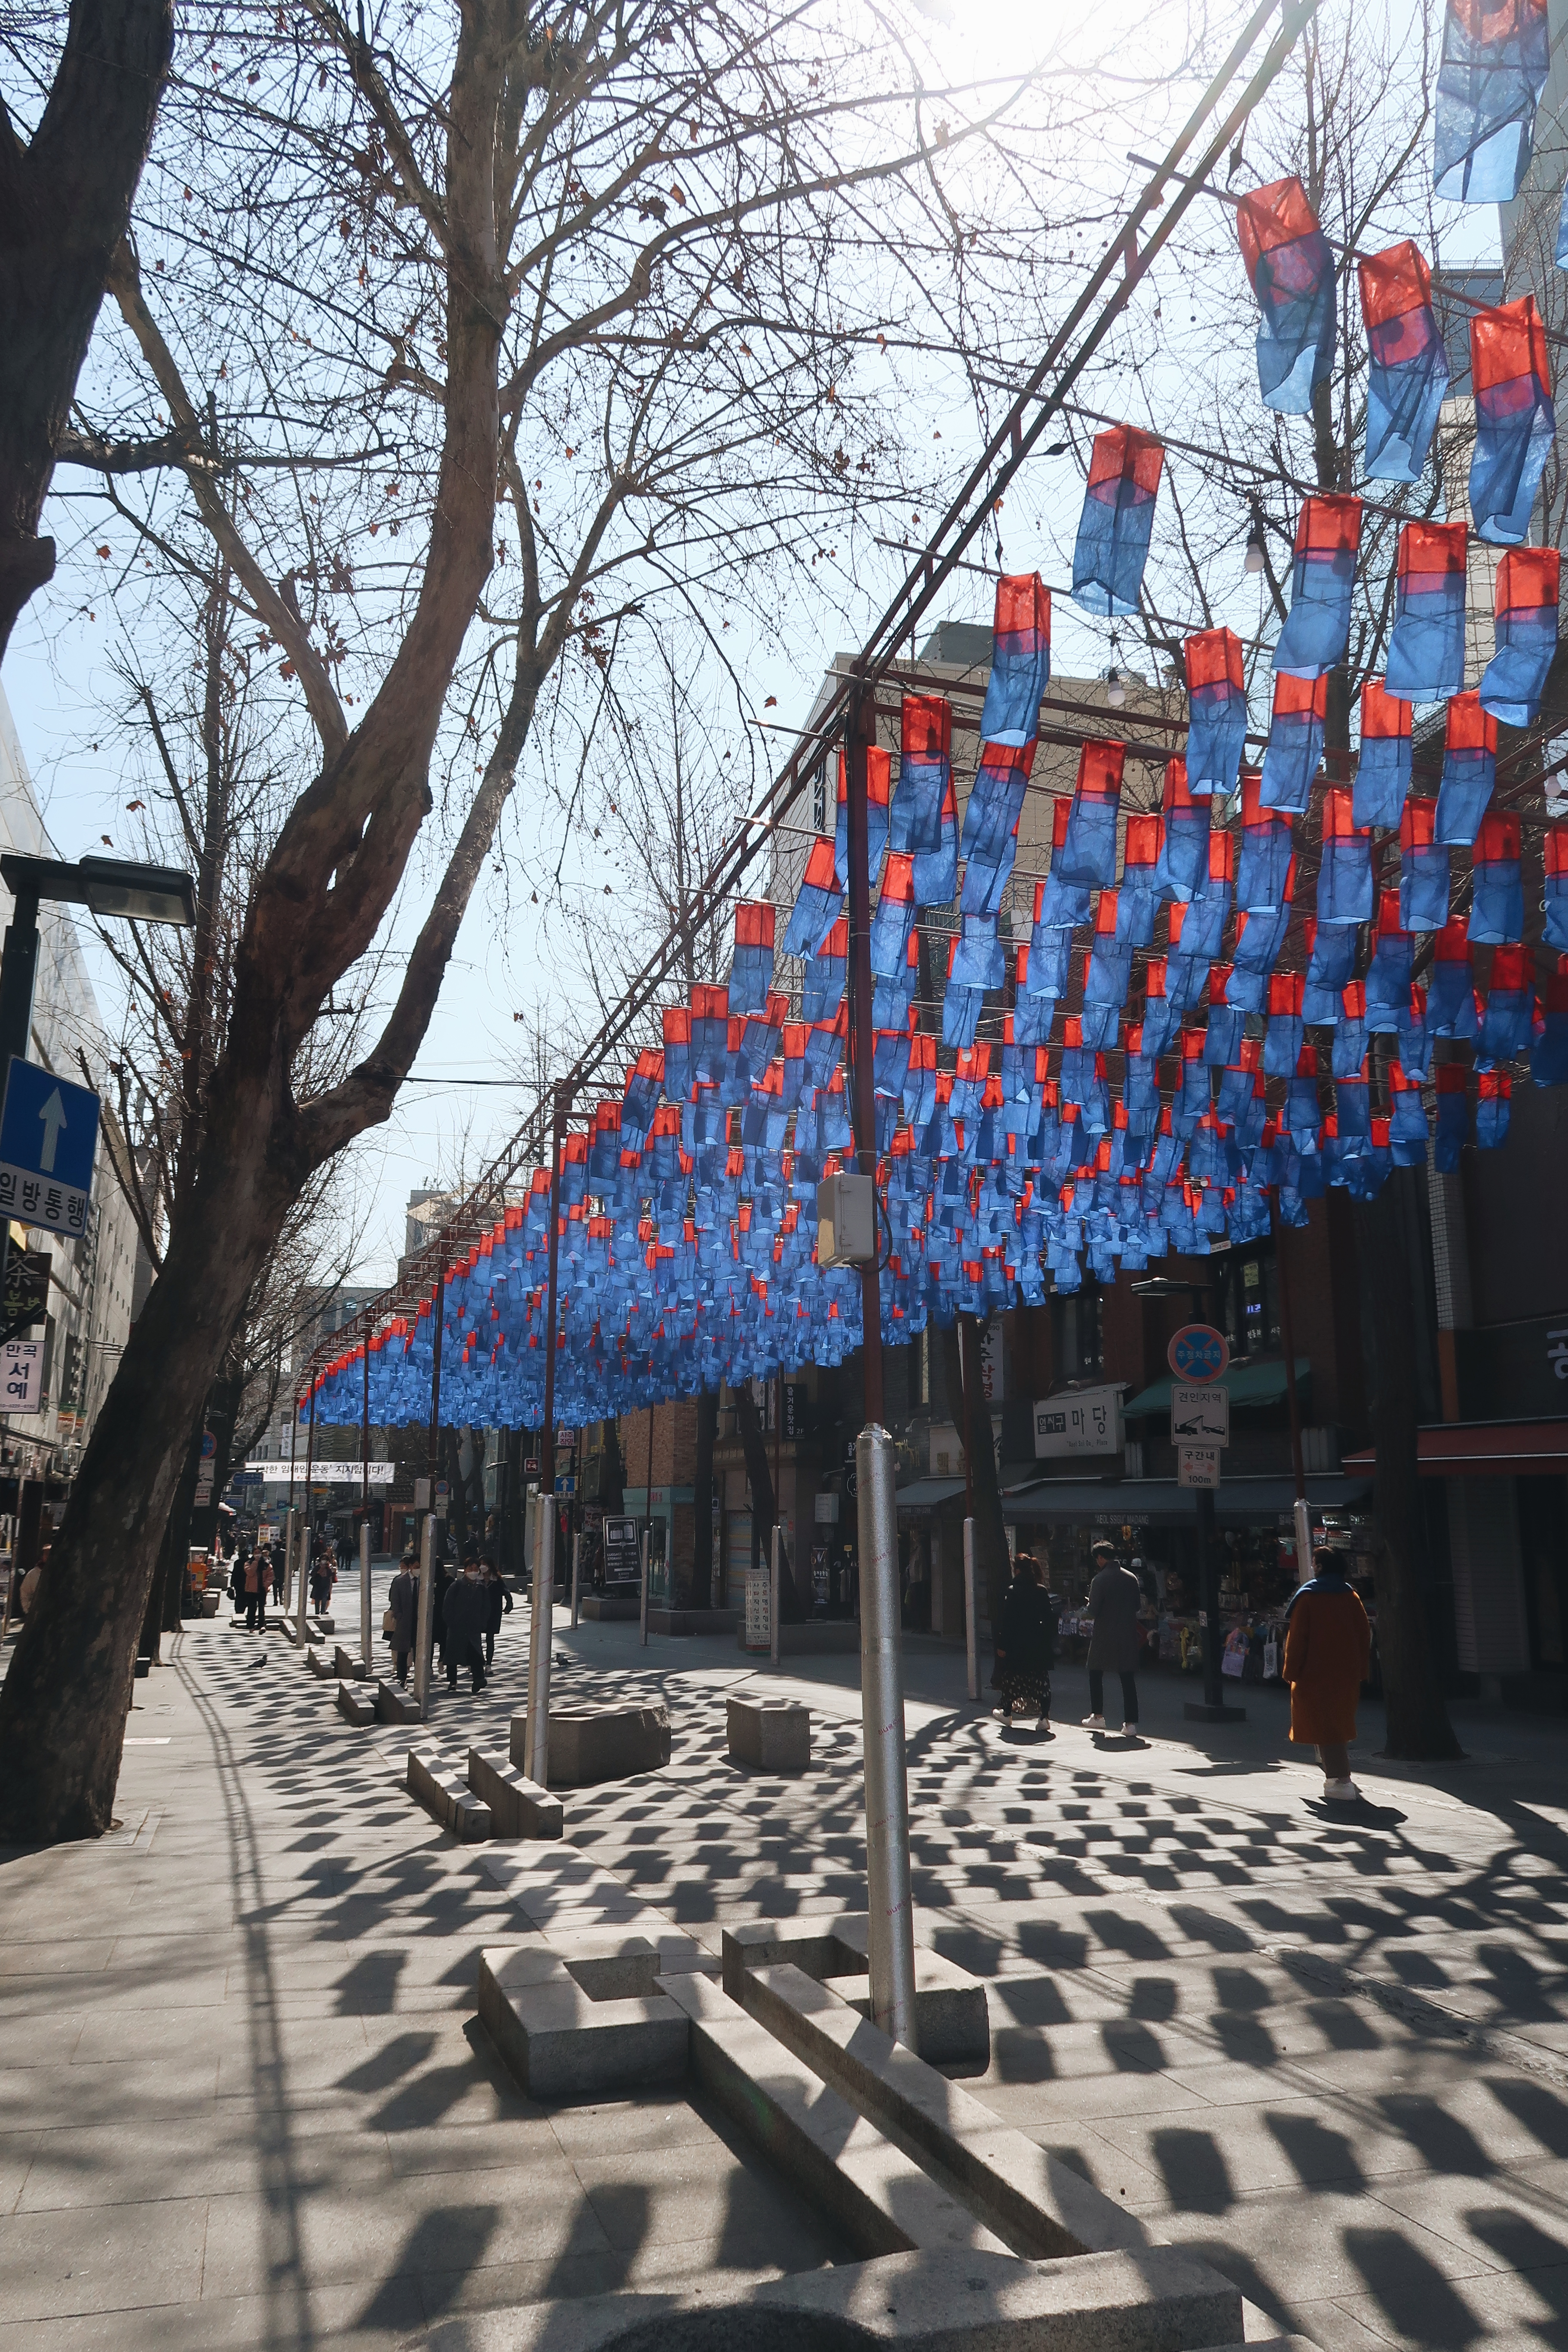 Vibrant blue and yellow lanterns hanging above a street (Seoul)